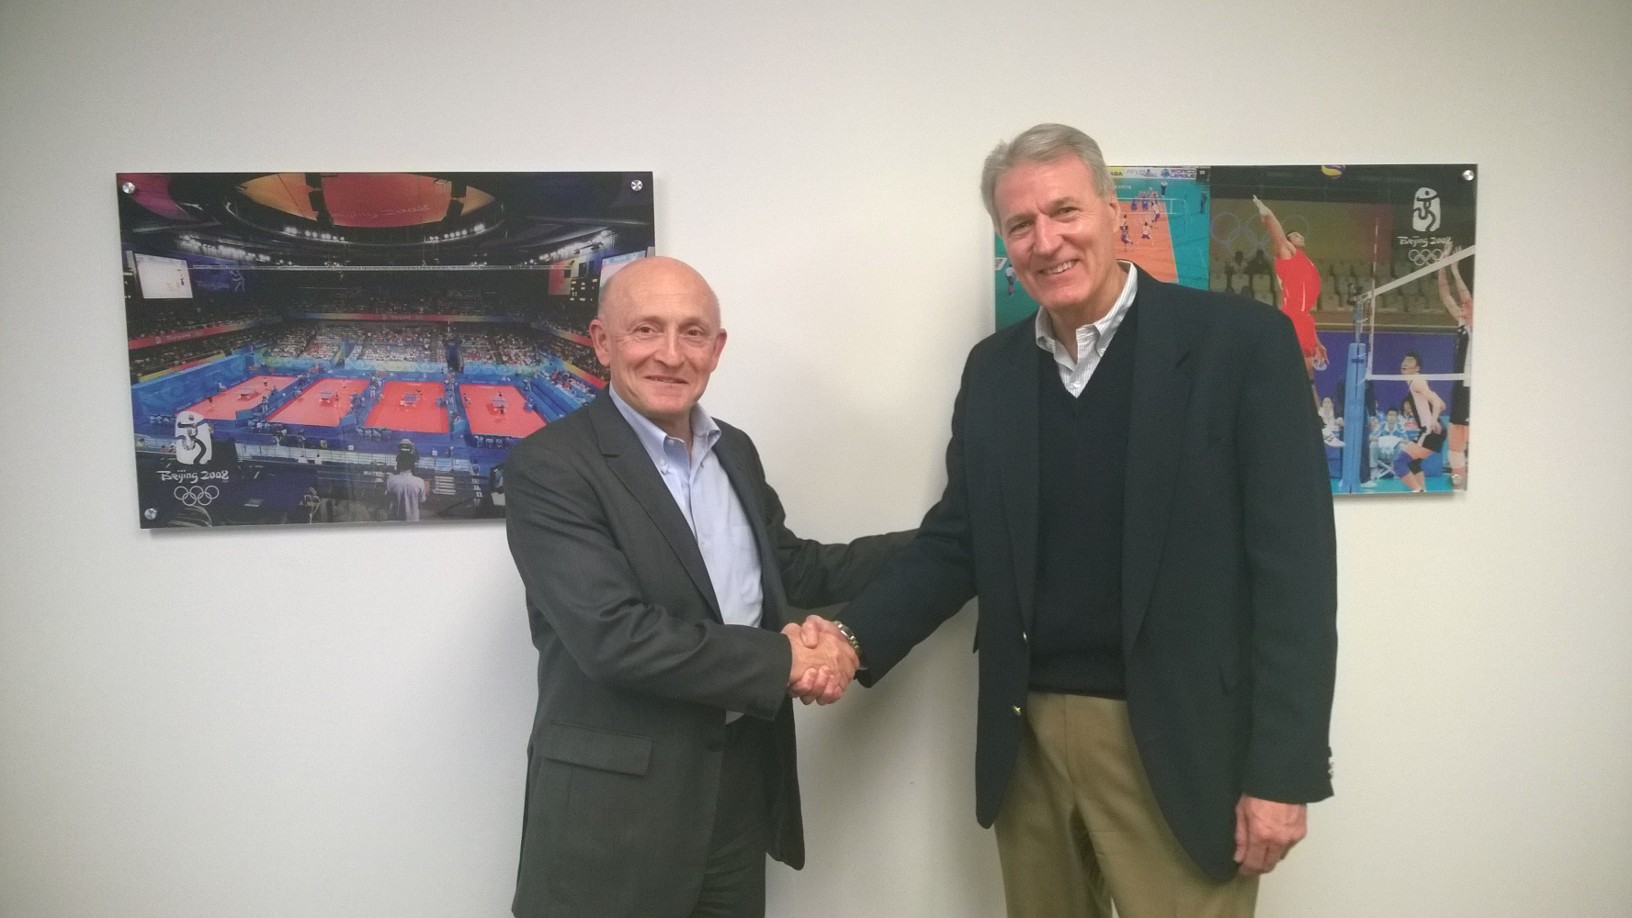 CEOs of Connor Sport Court and Gerflor Shake Hands After Inking Partnership